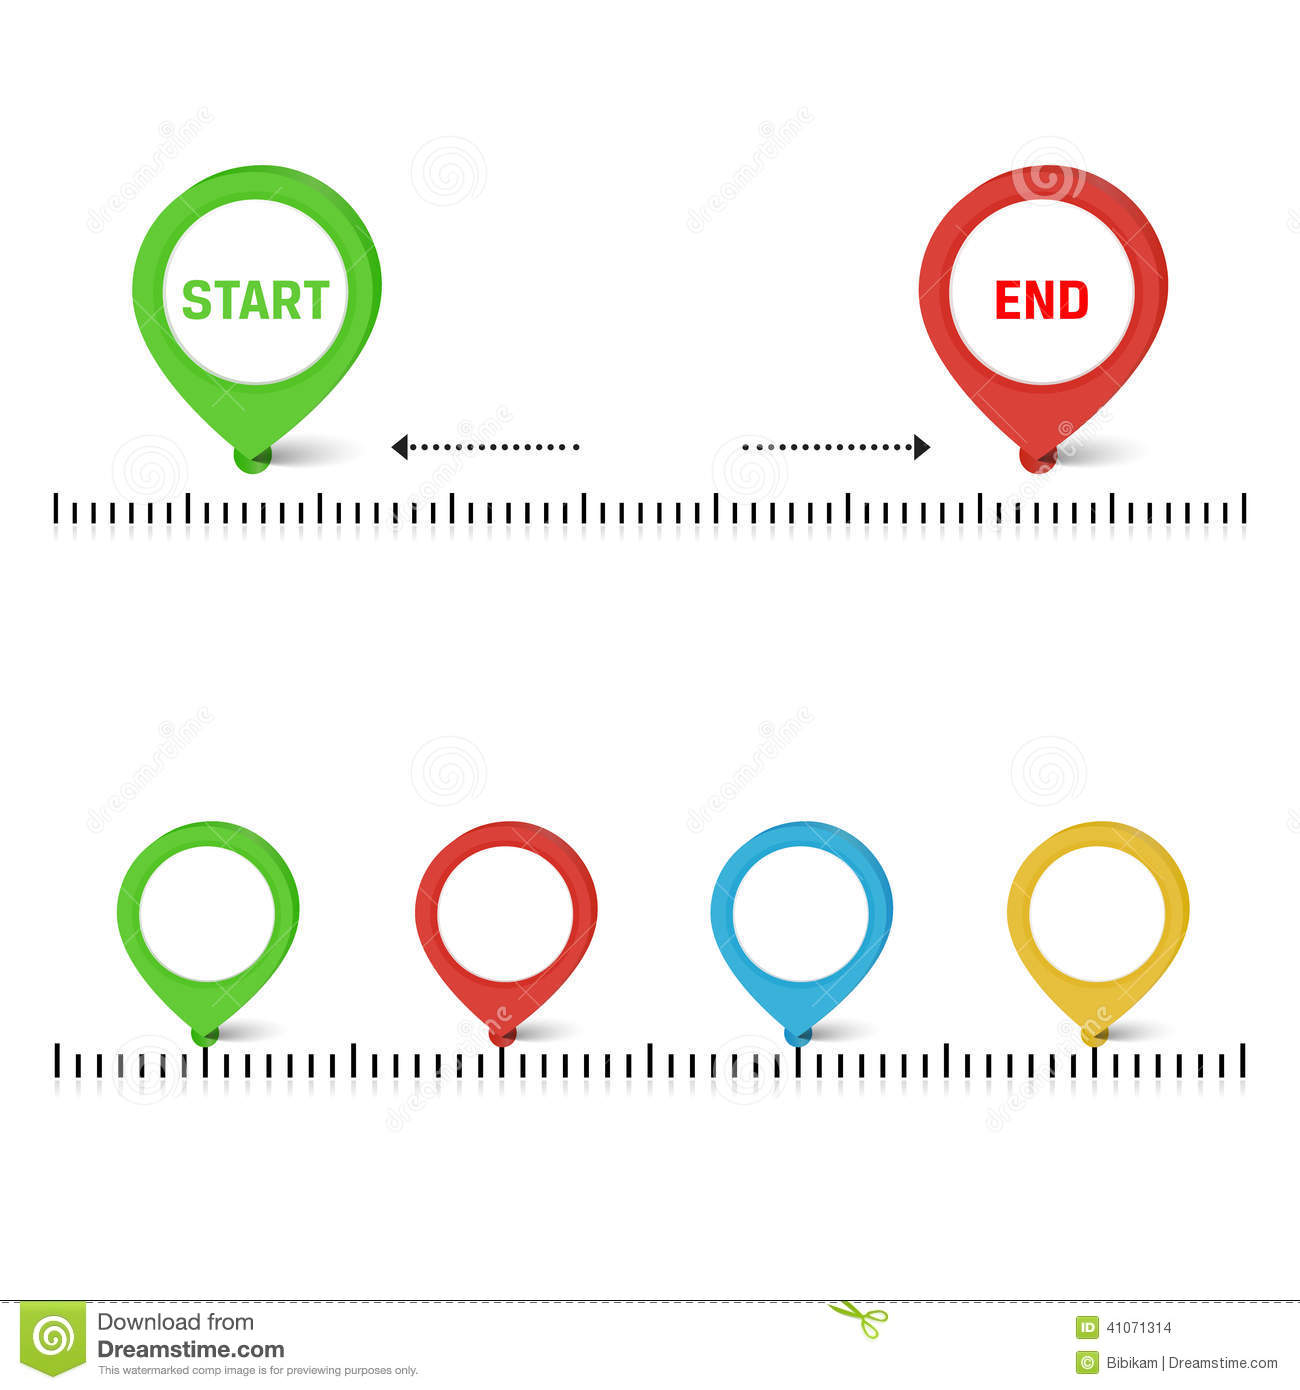 Timeline clipart - Clipground